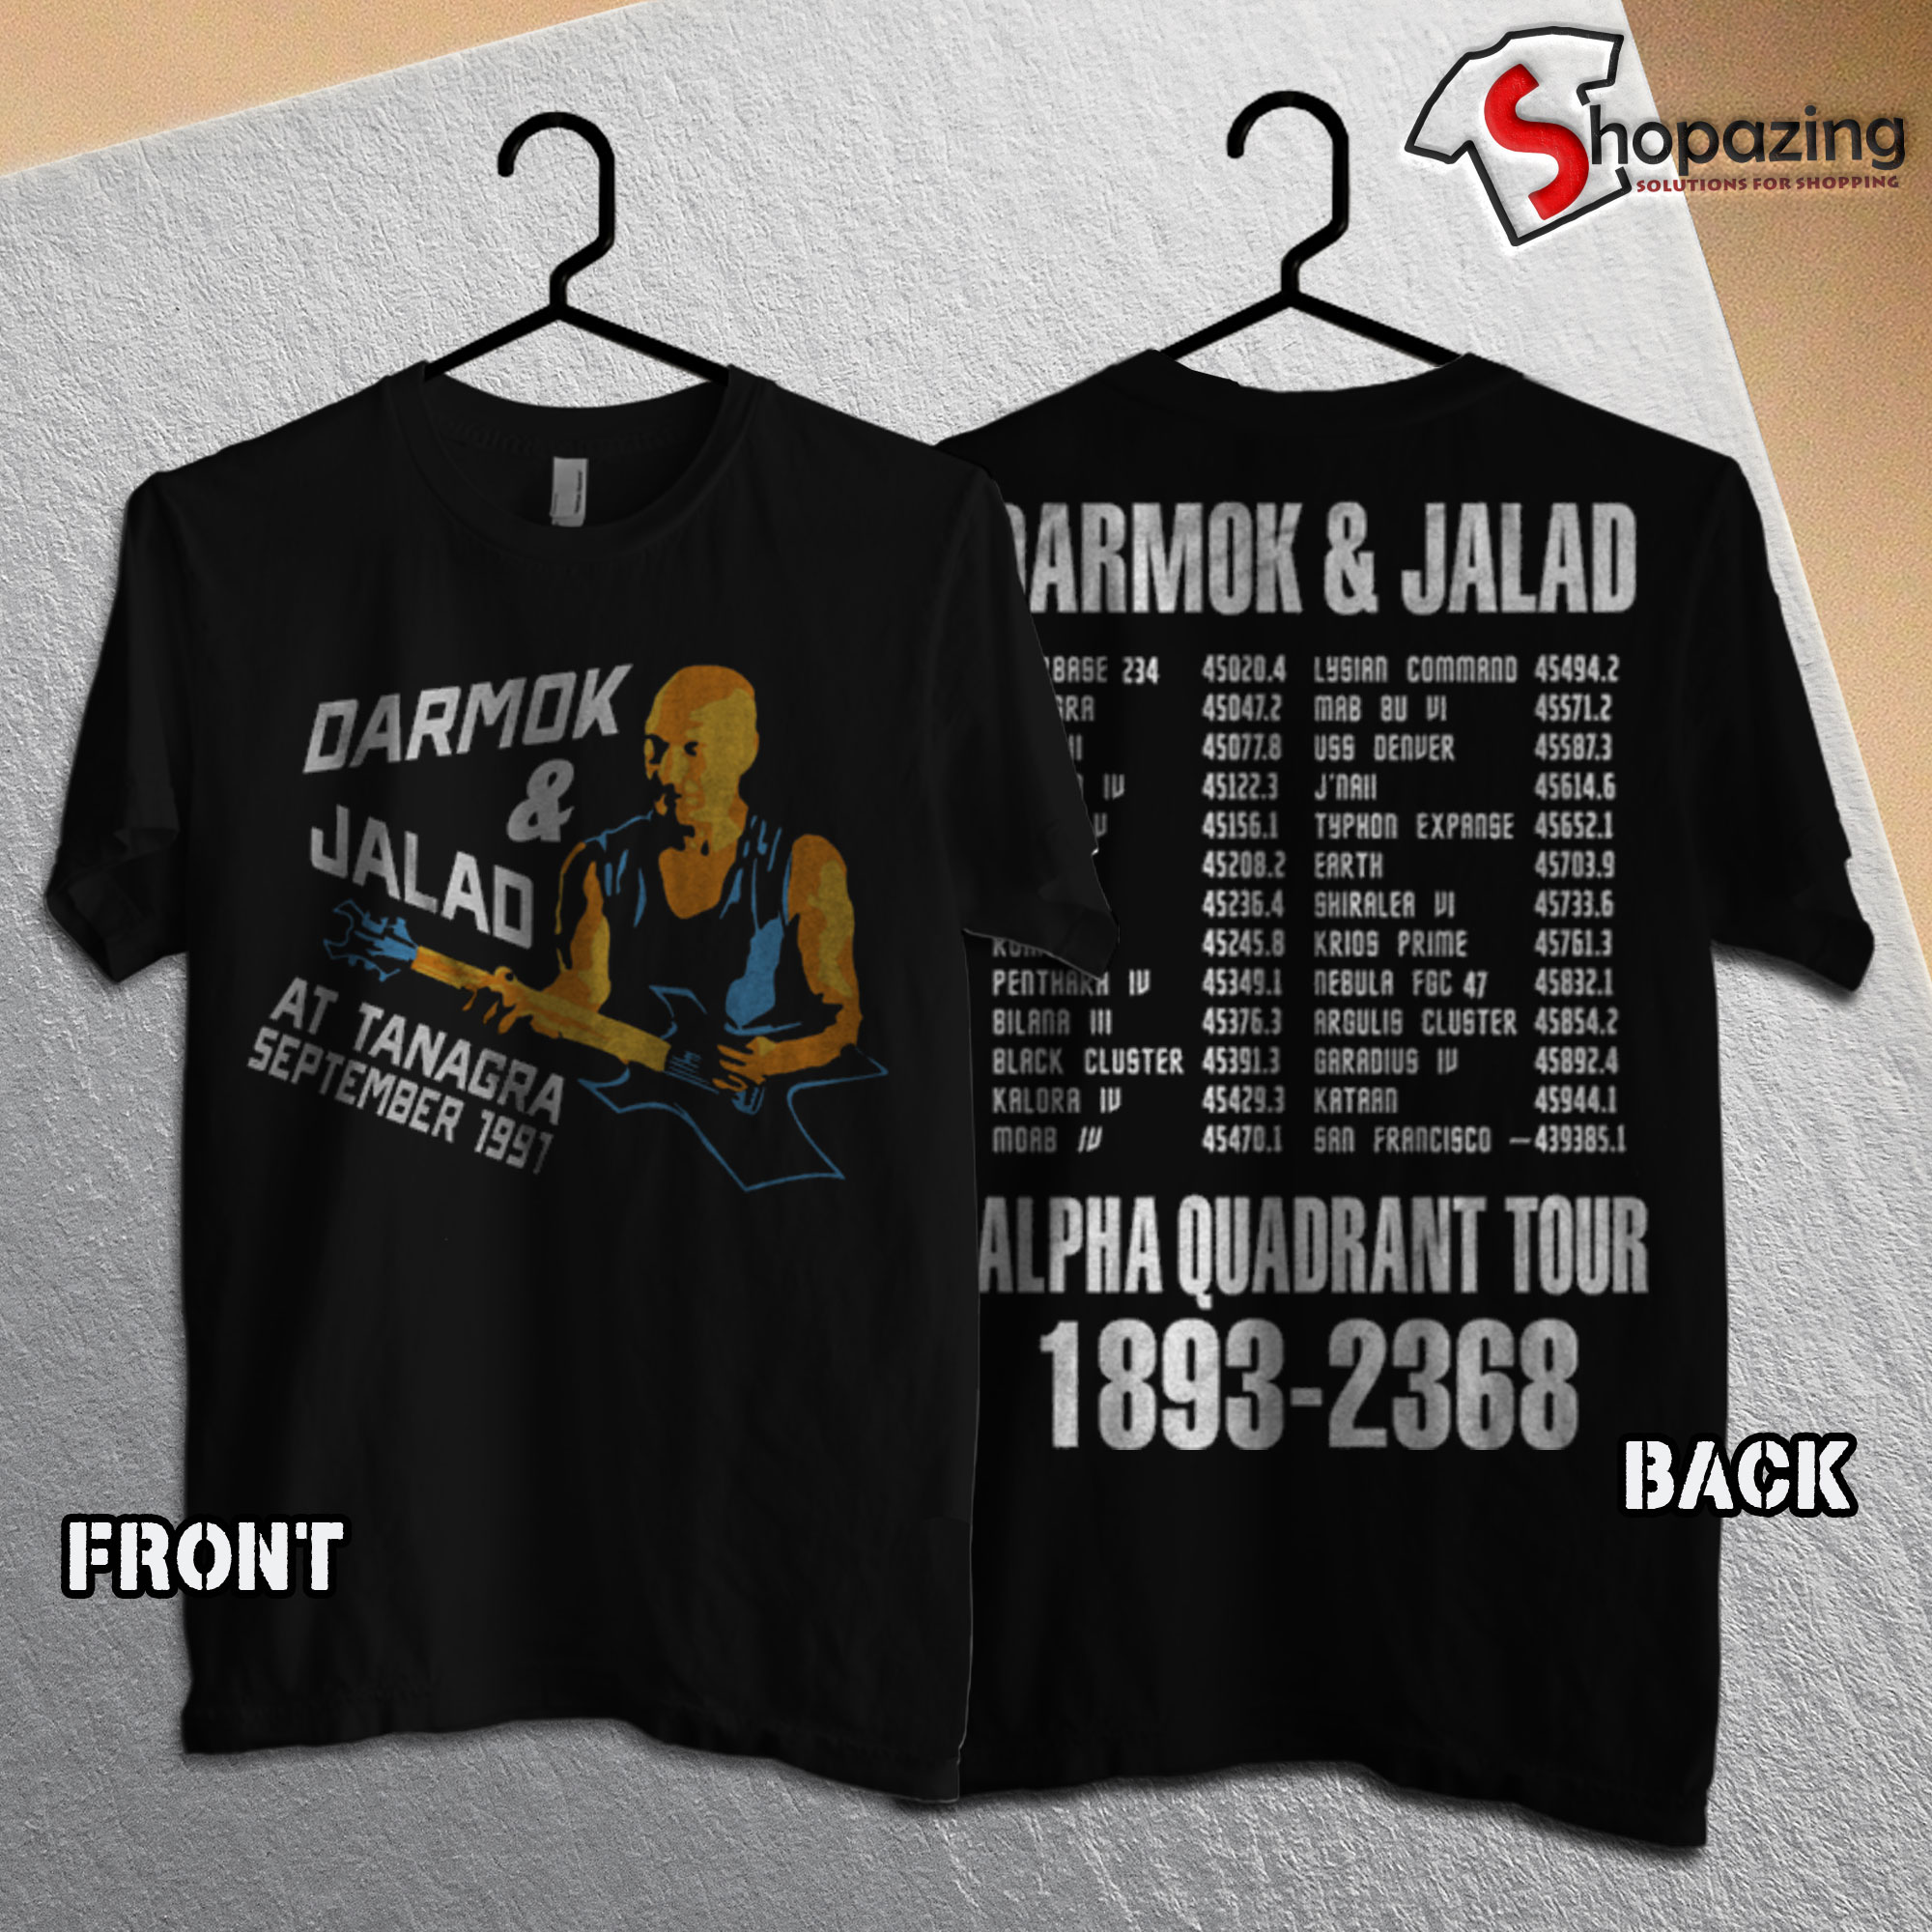 Darmok & Jalad at Tanagra T shirt Front Back